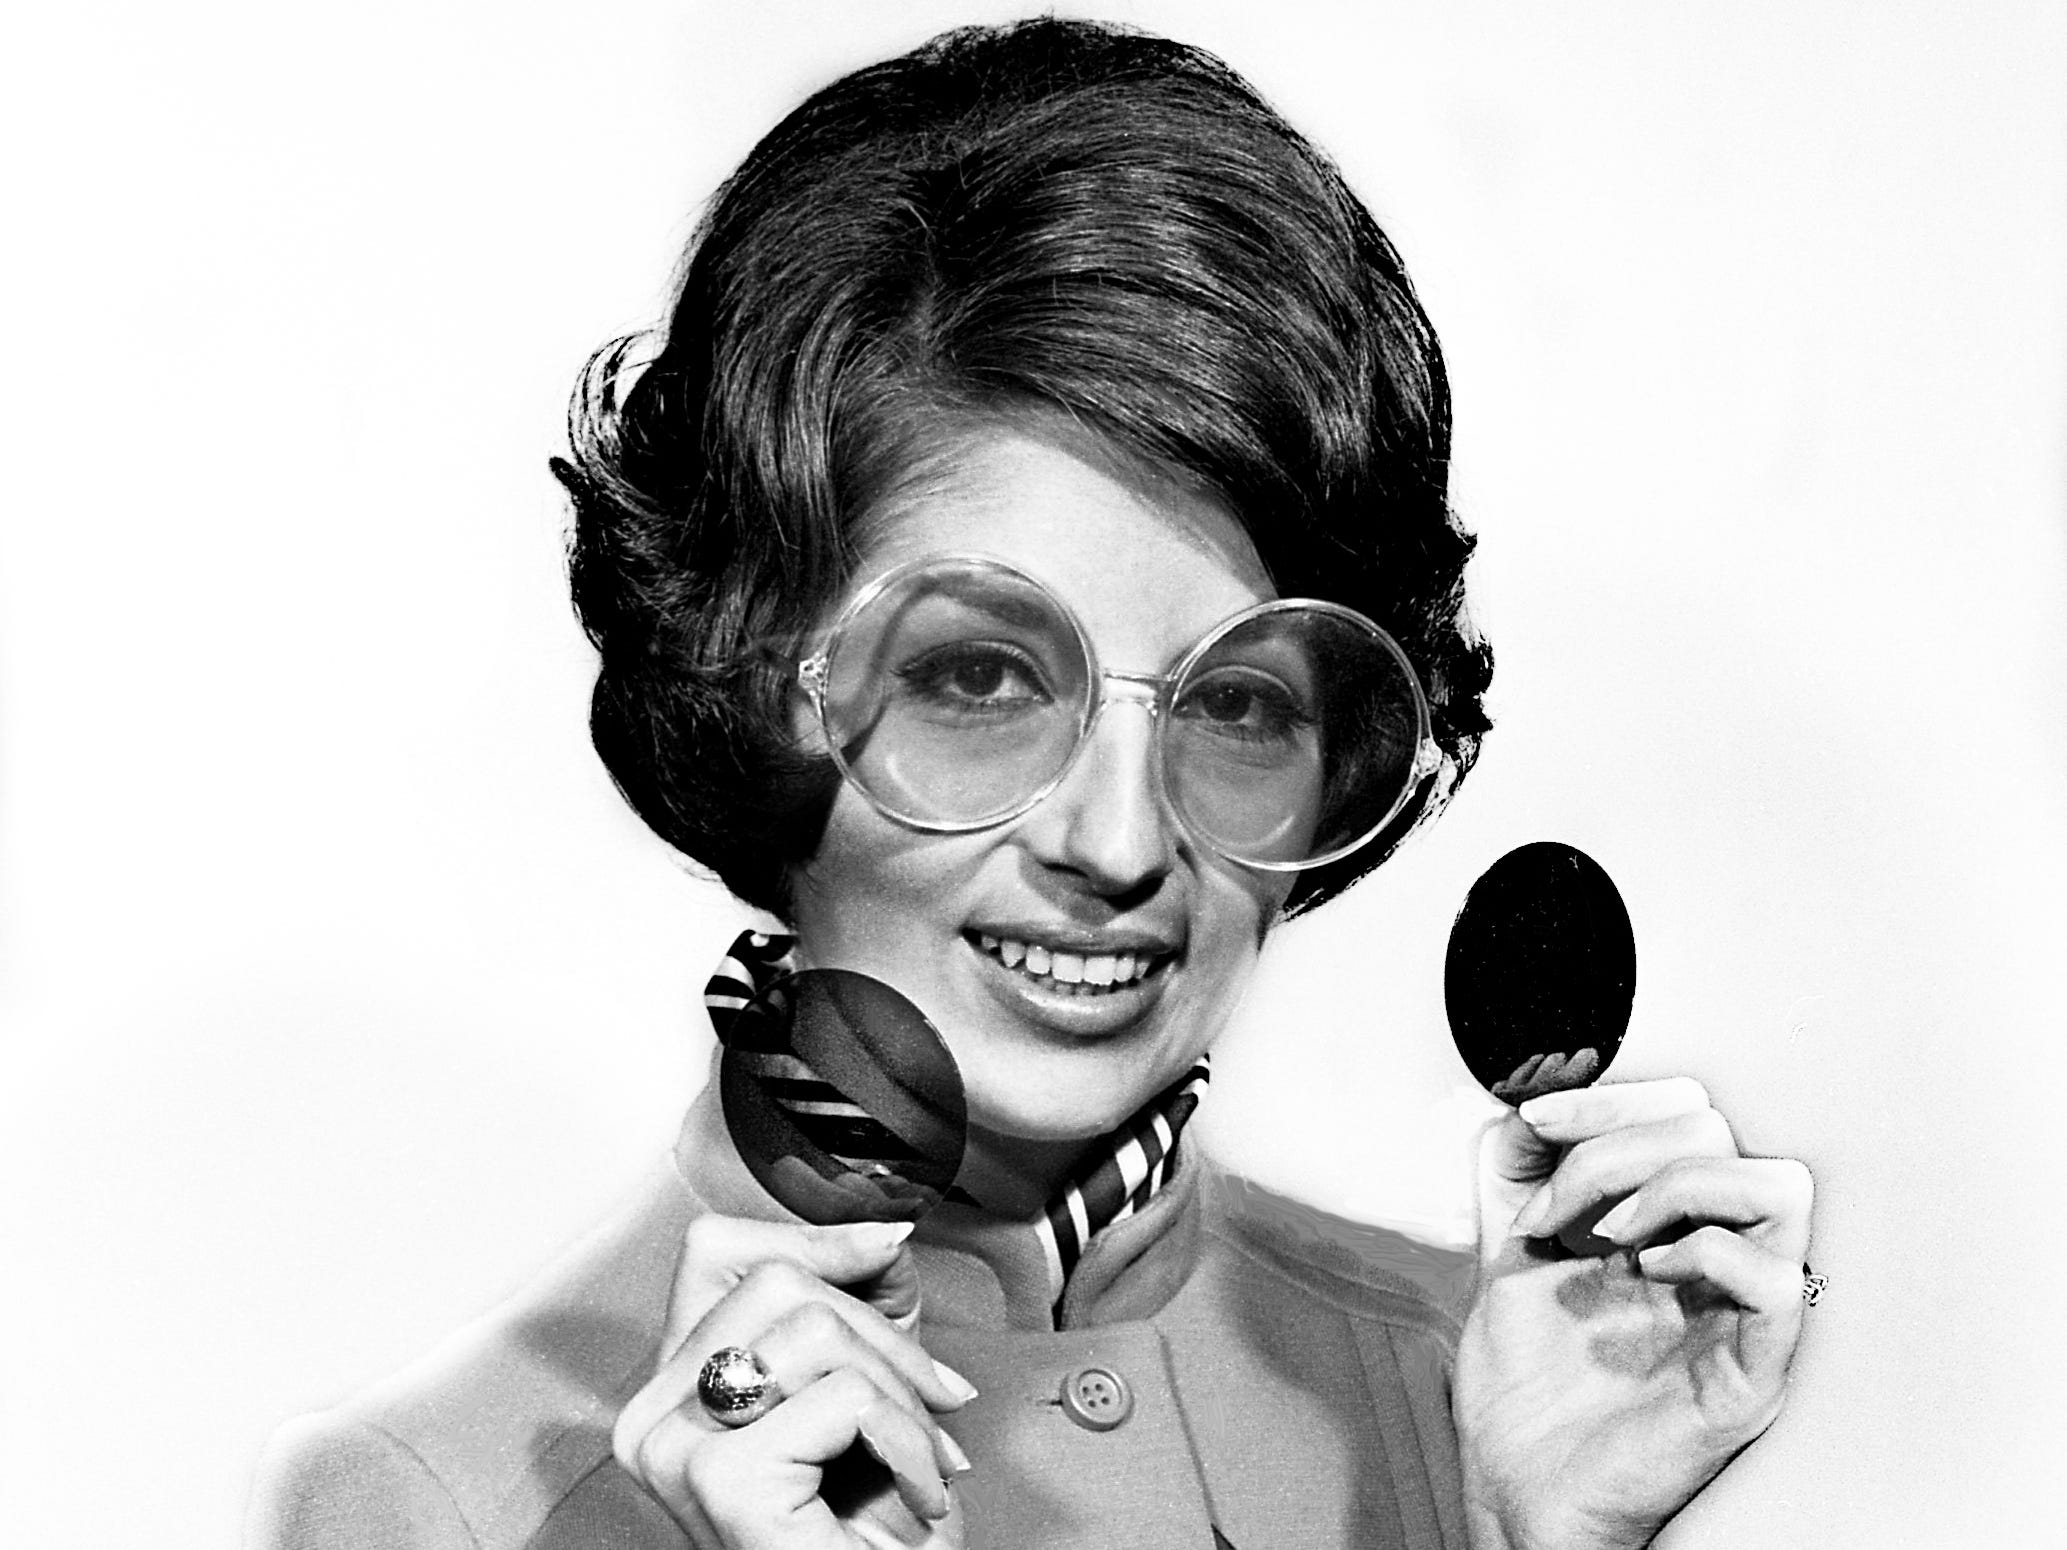 Looking for that Christmas gift for someone special, model Mary Helen Cope is wearing giant-sized round shades that come with seven interchangeable lenses Dec. 5, 1968 and the set is $5.95 at Sears.